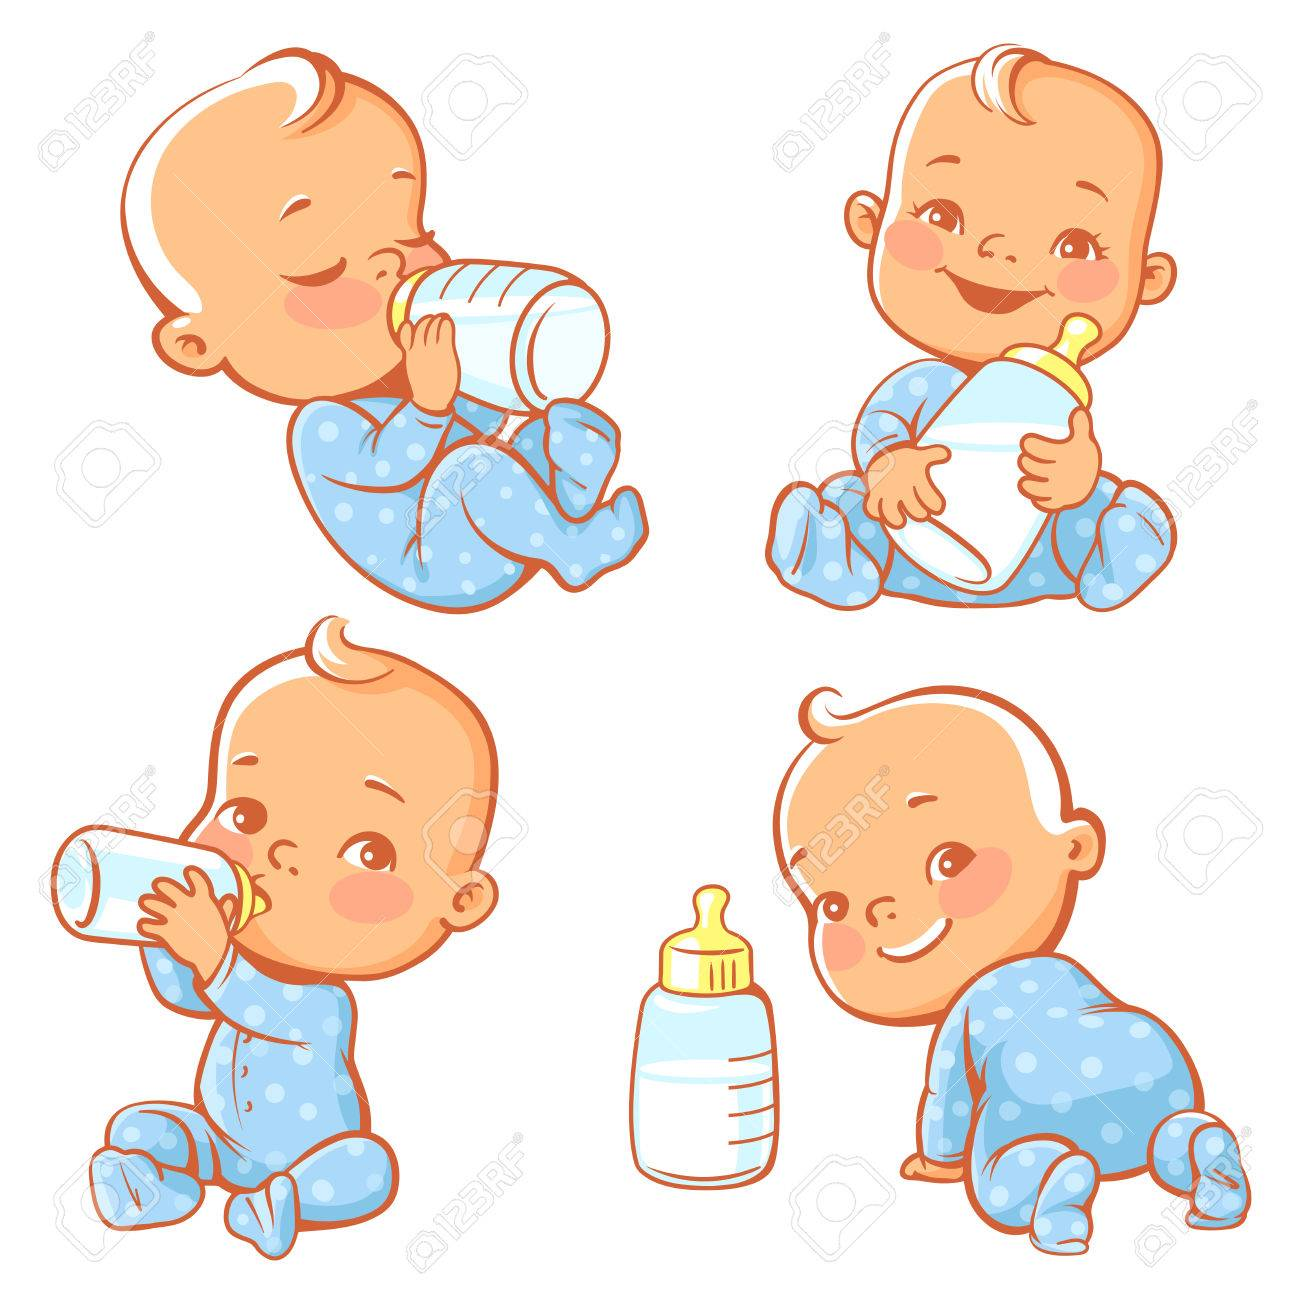 ebf0cae3c Set With Cute Little Baby With Bottle Of Milk. Newborn Baby Boy ...